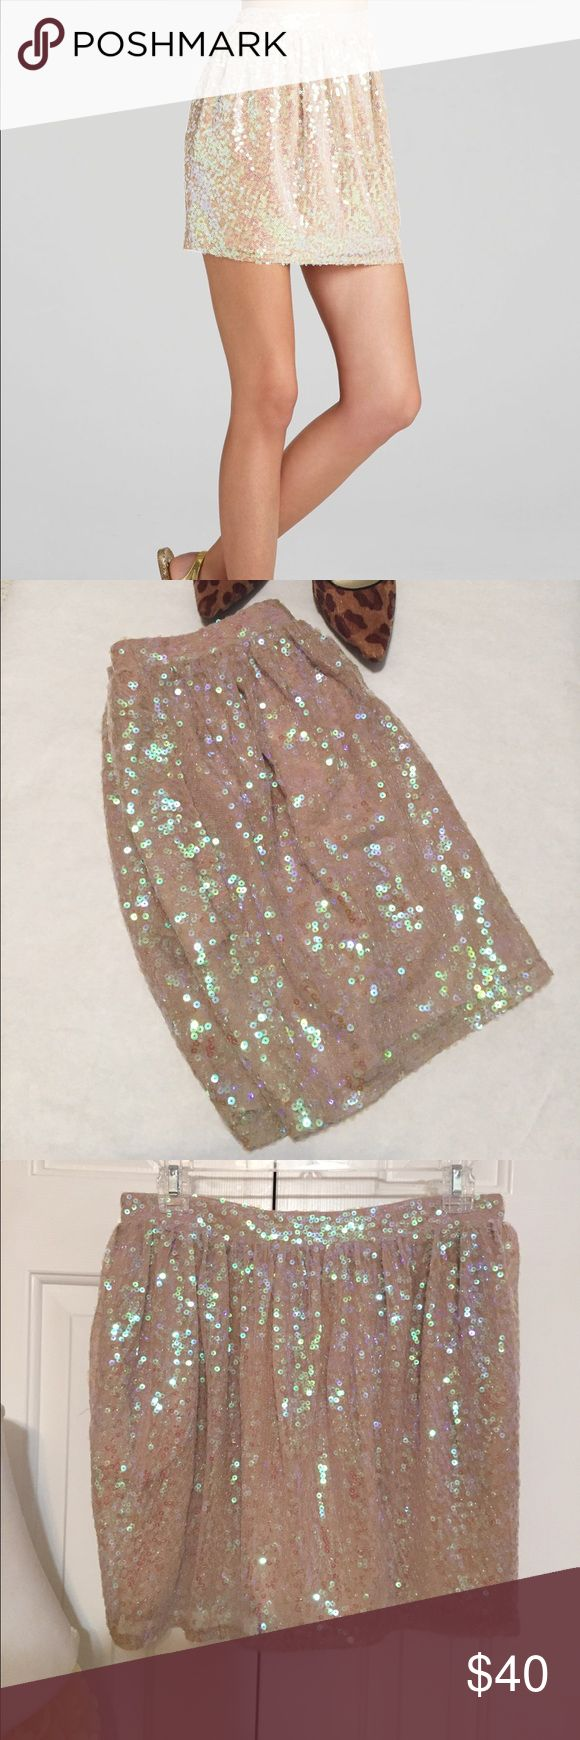 BCBGeneration Sequin Dirndl Skirt Shine bright in this scene stealing sequins with party perfect BCBGeneration skirt. Banded waist with ruching. Back center zipper. Side pockets! Fully lined. Color Nude. 100% Polyester shell and lining. Brand new with tags. Open to close offers! BCBGeneration Skirts Mini